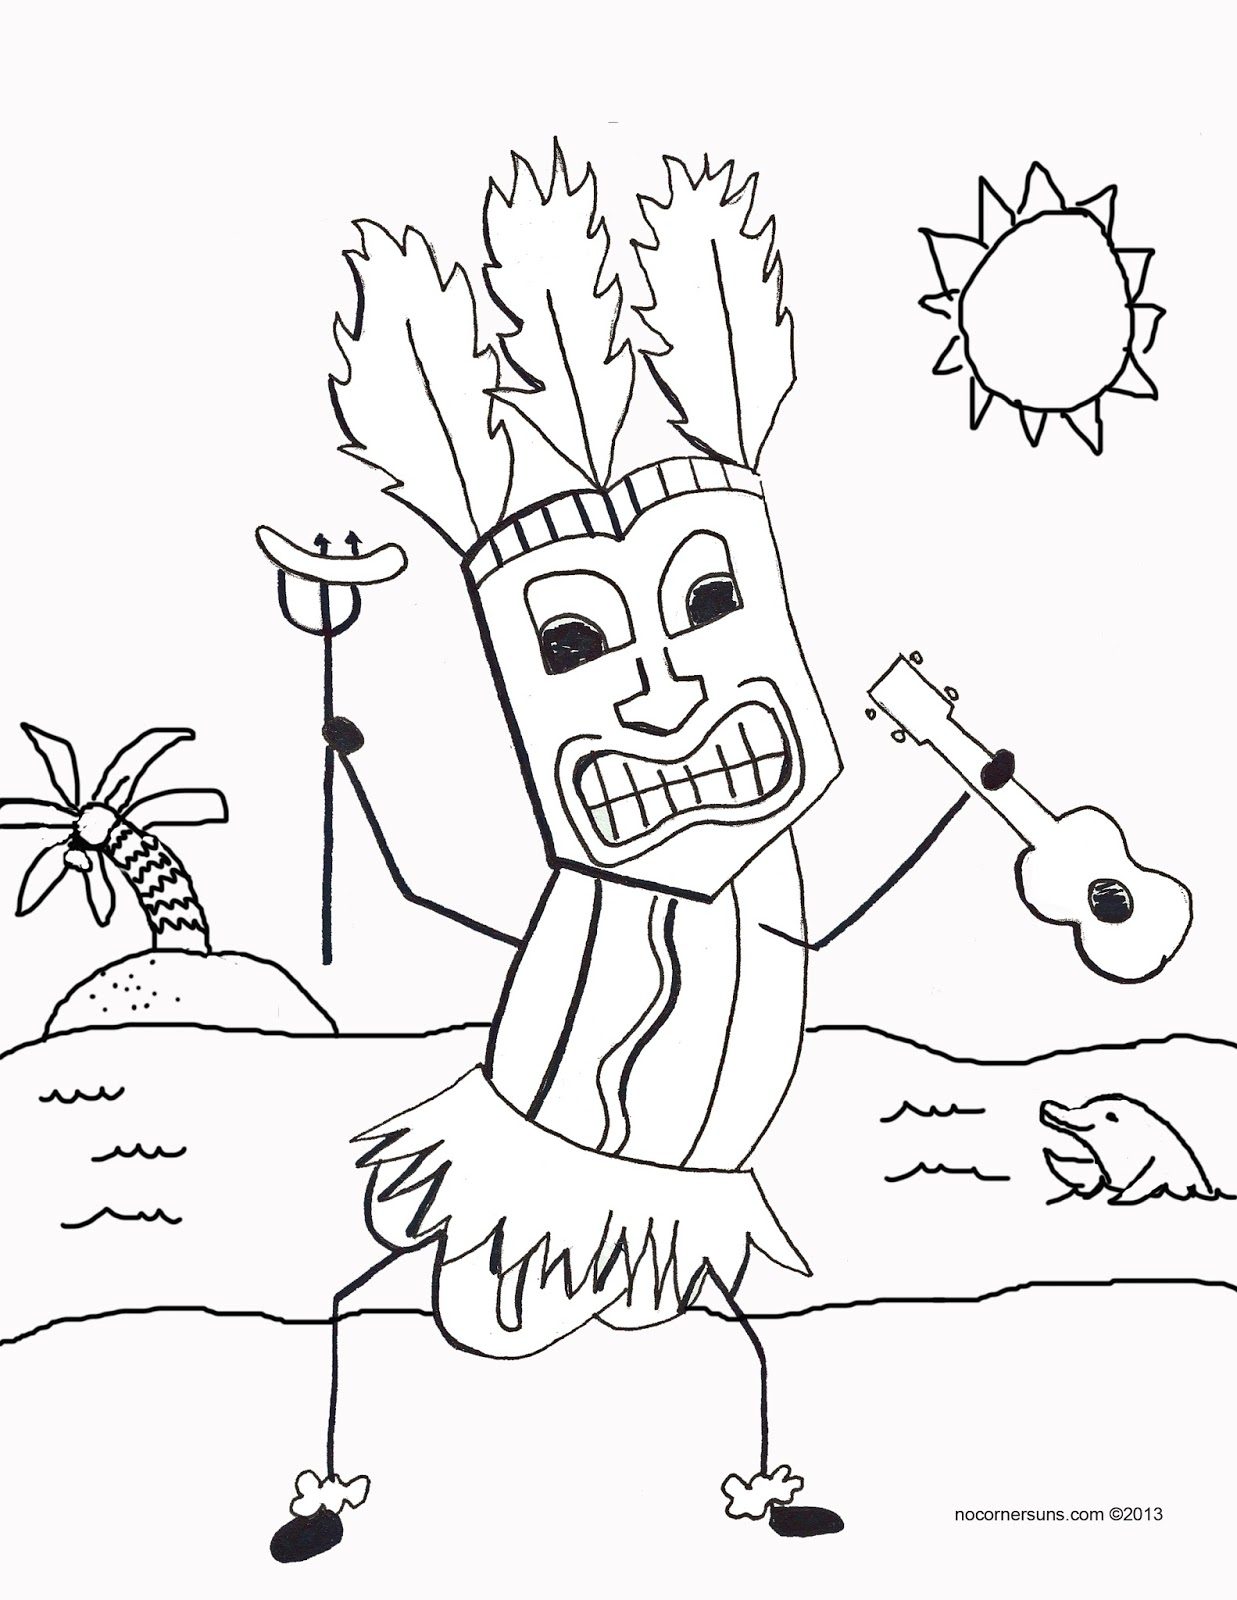 everyone loves a hot dog coloring page especially if its a tiki hot dog with a ukulele i didnt make this for school i actually made it for my husbands